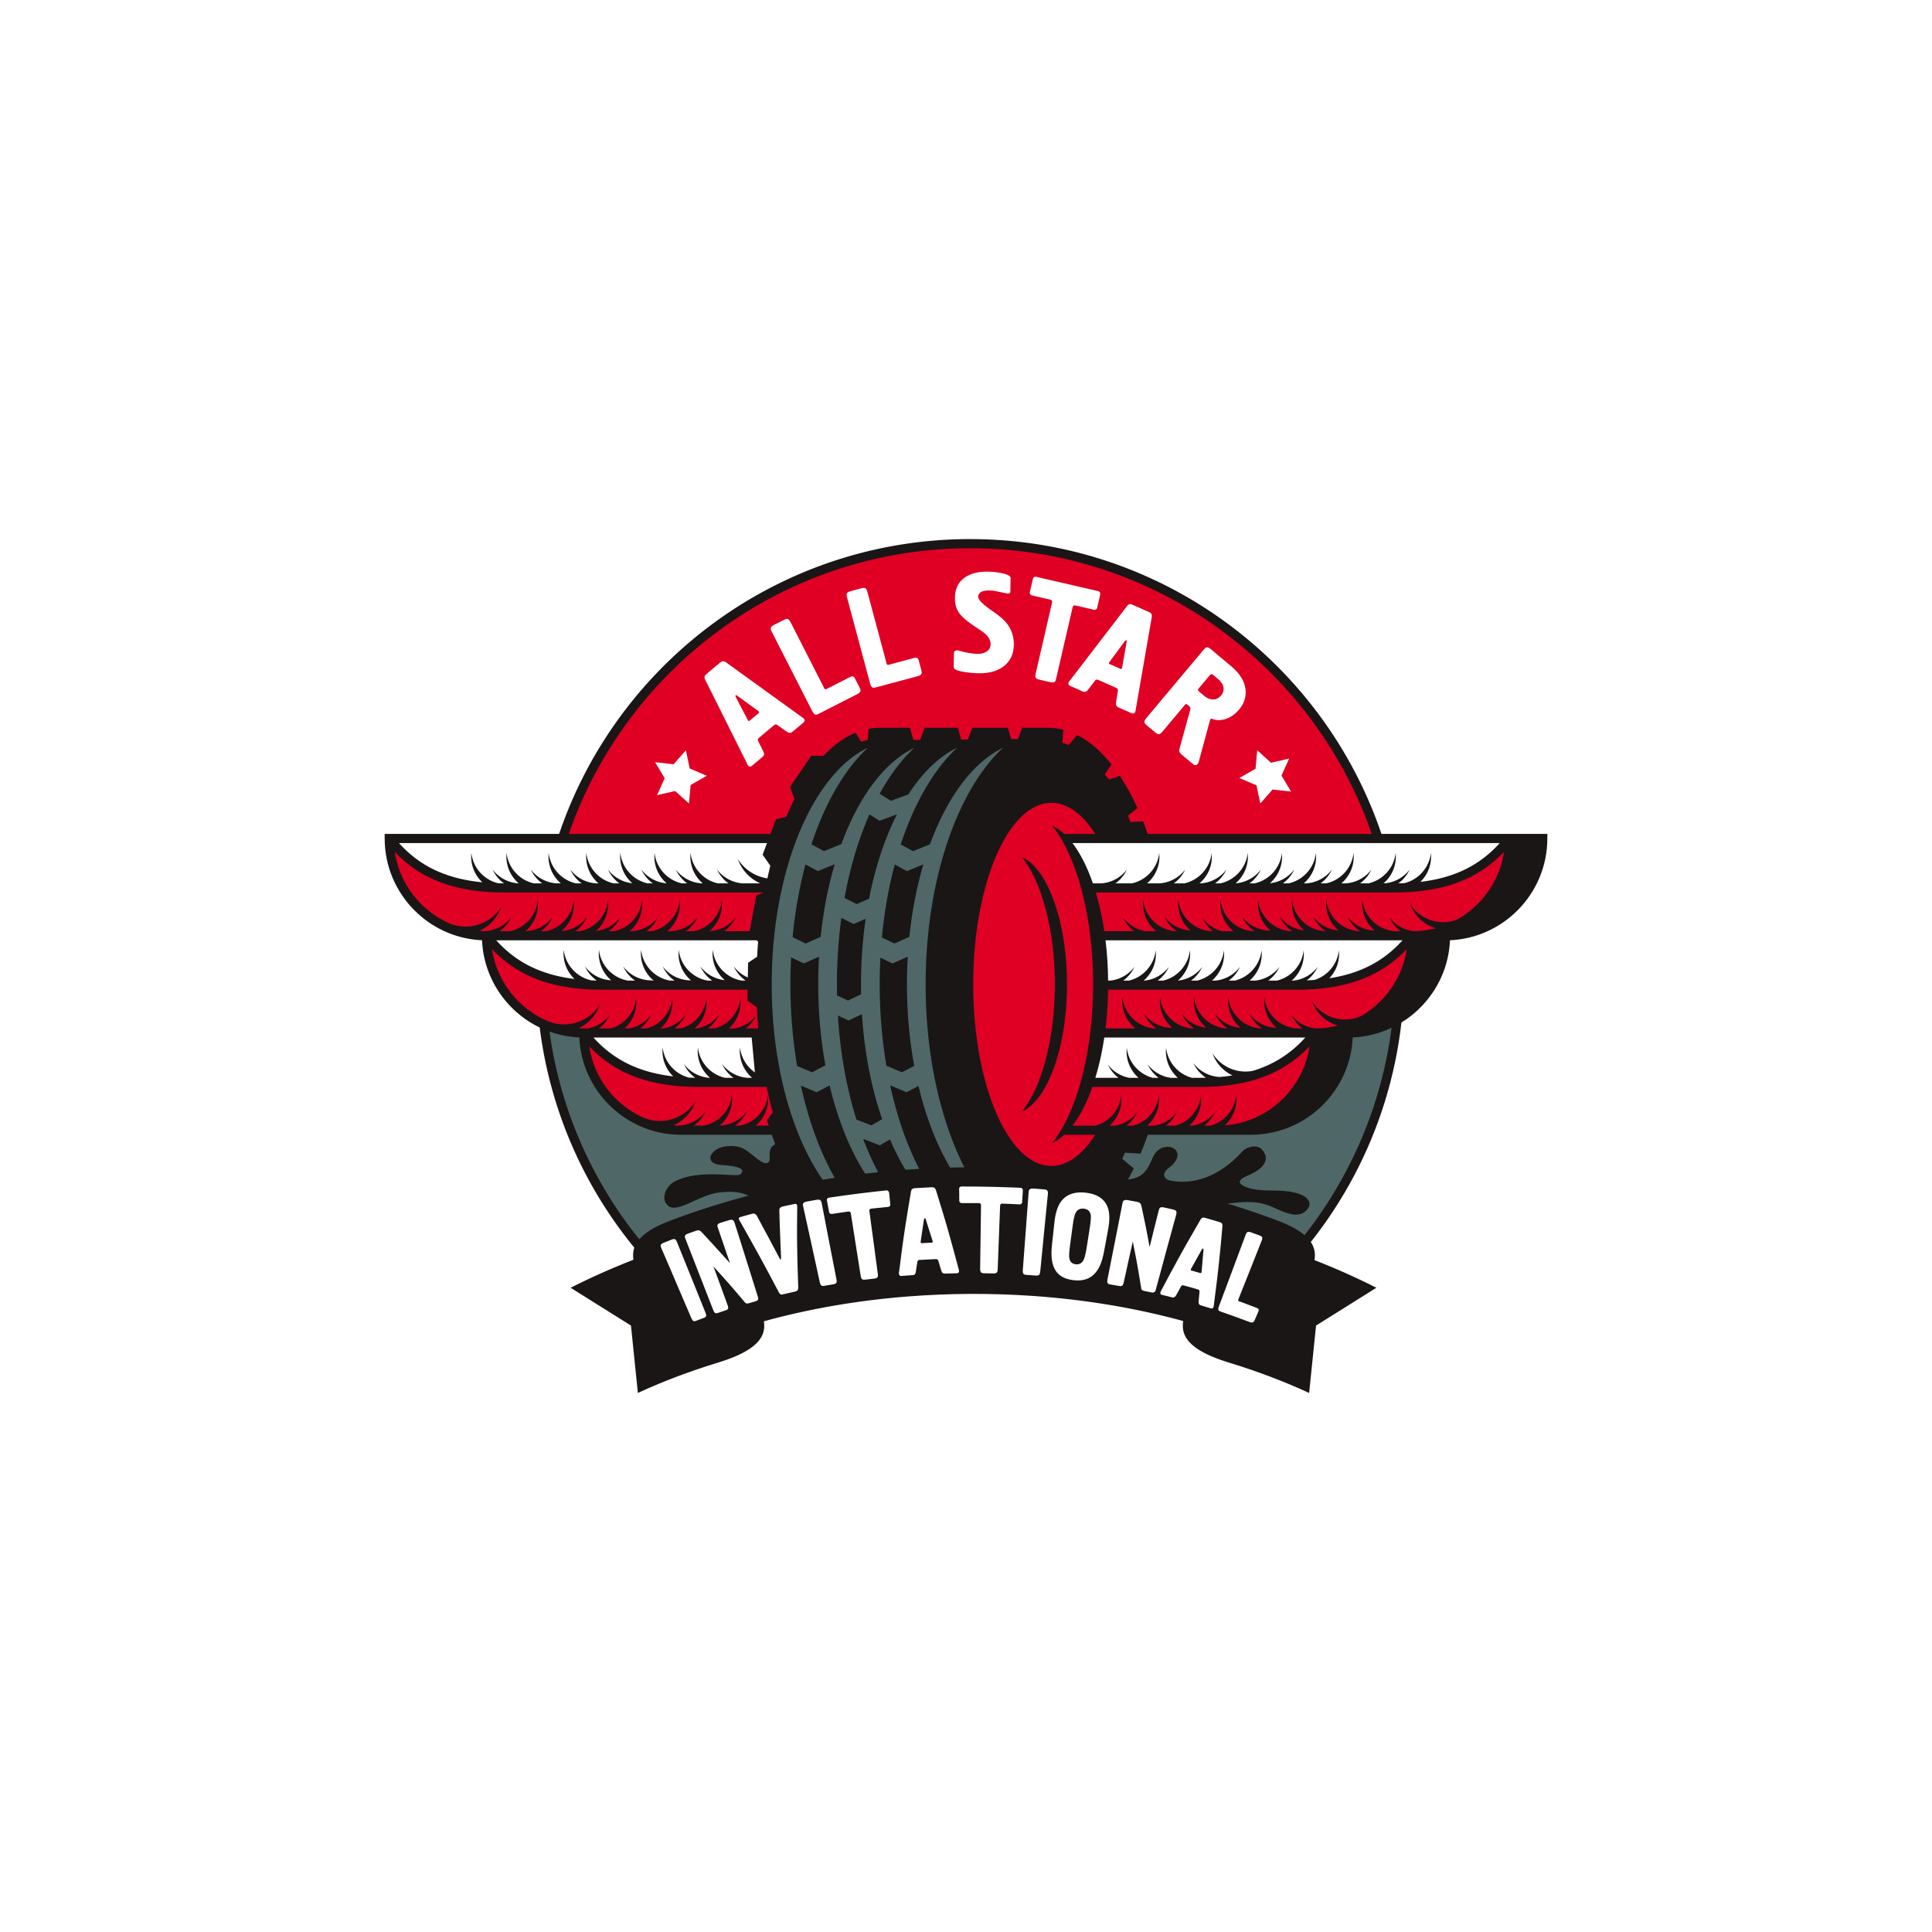 All Star Invitational 003